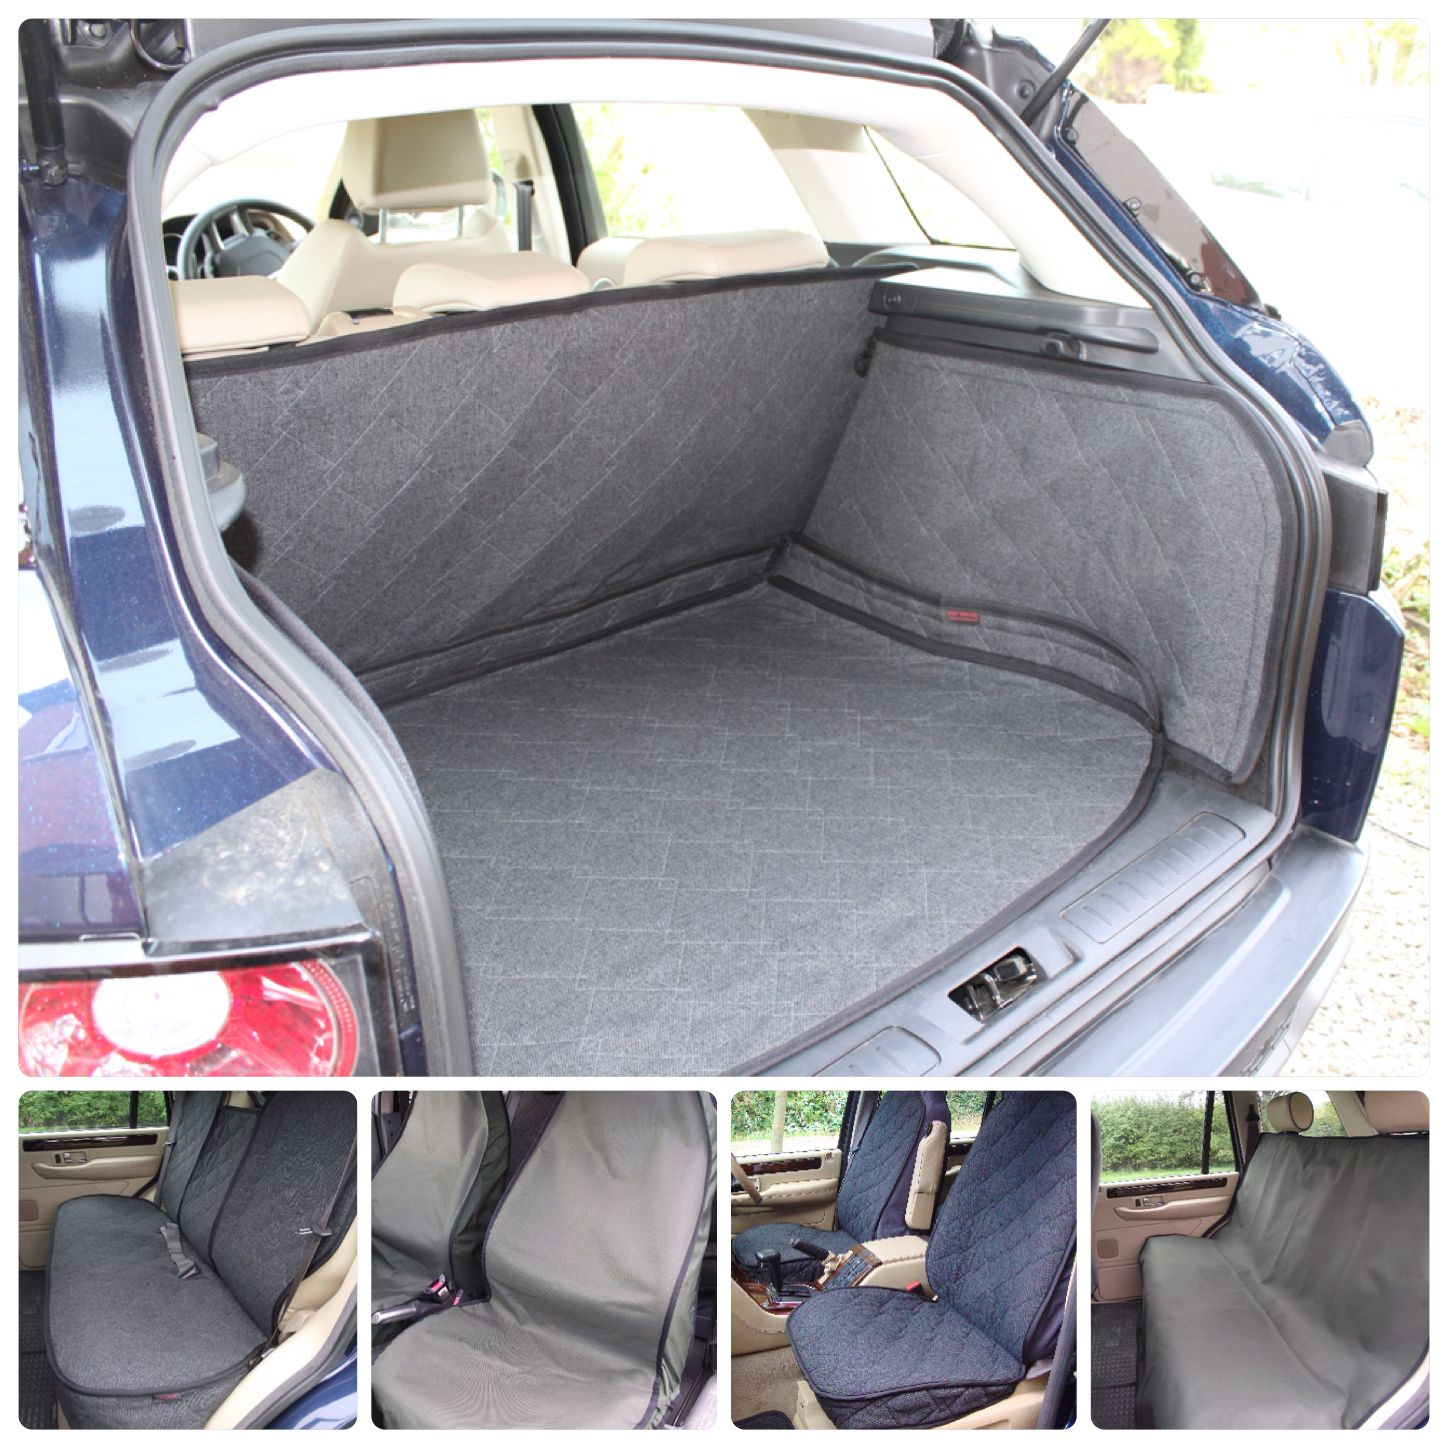 OTT have a great range of car seat covers and custom boot